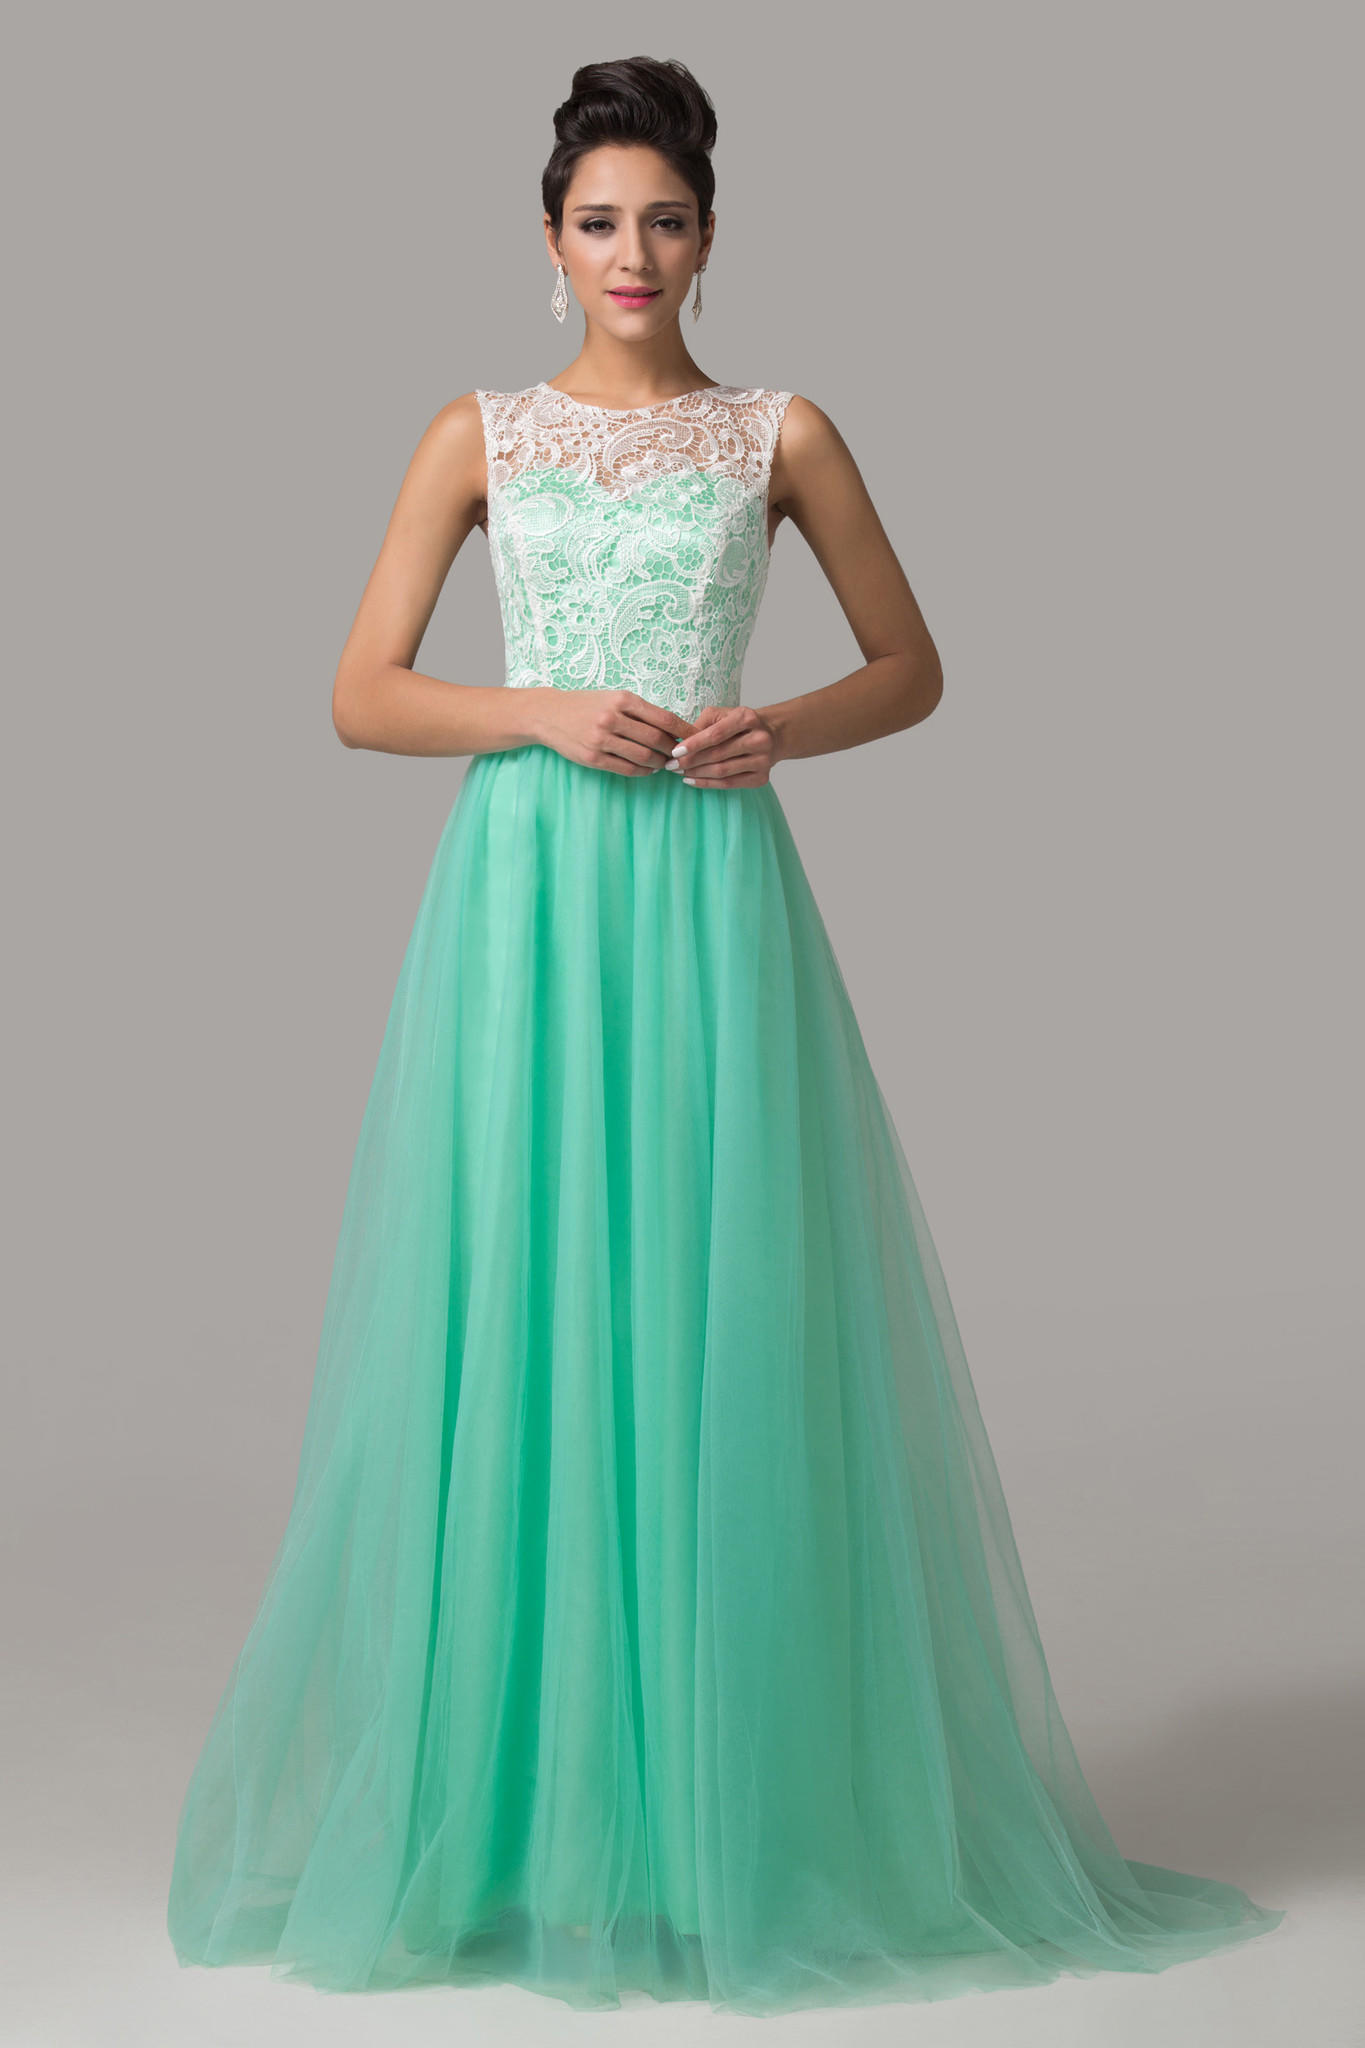 8Th Grade Semi Formal Dresses